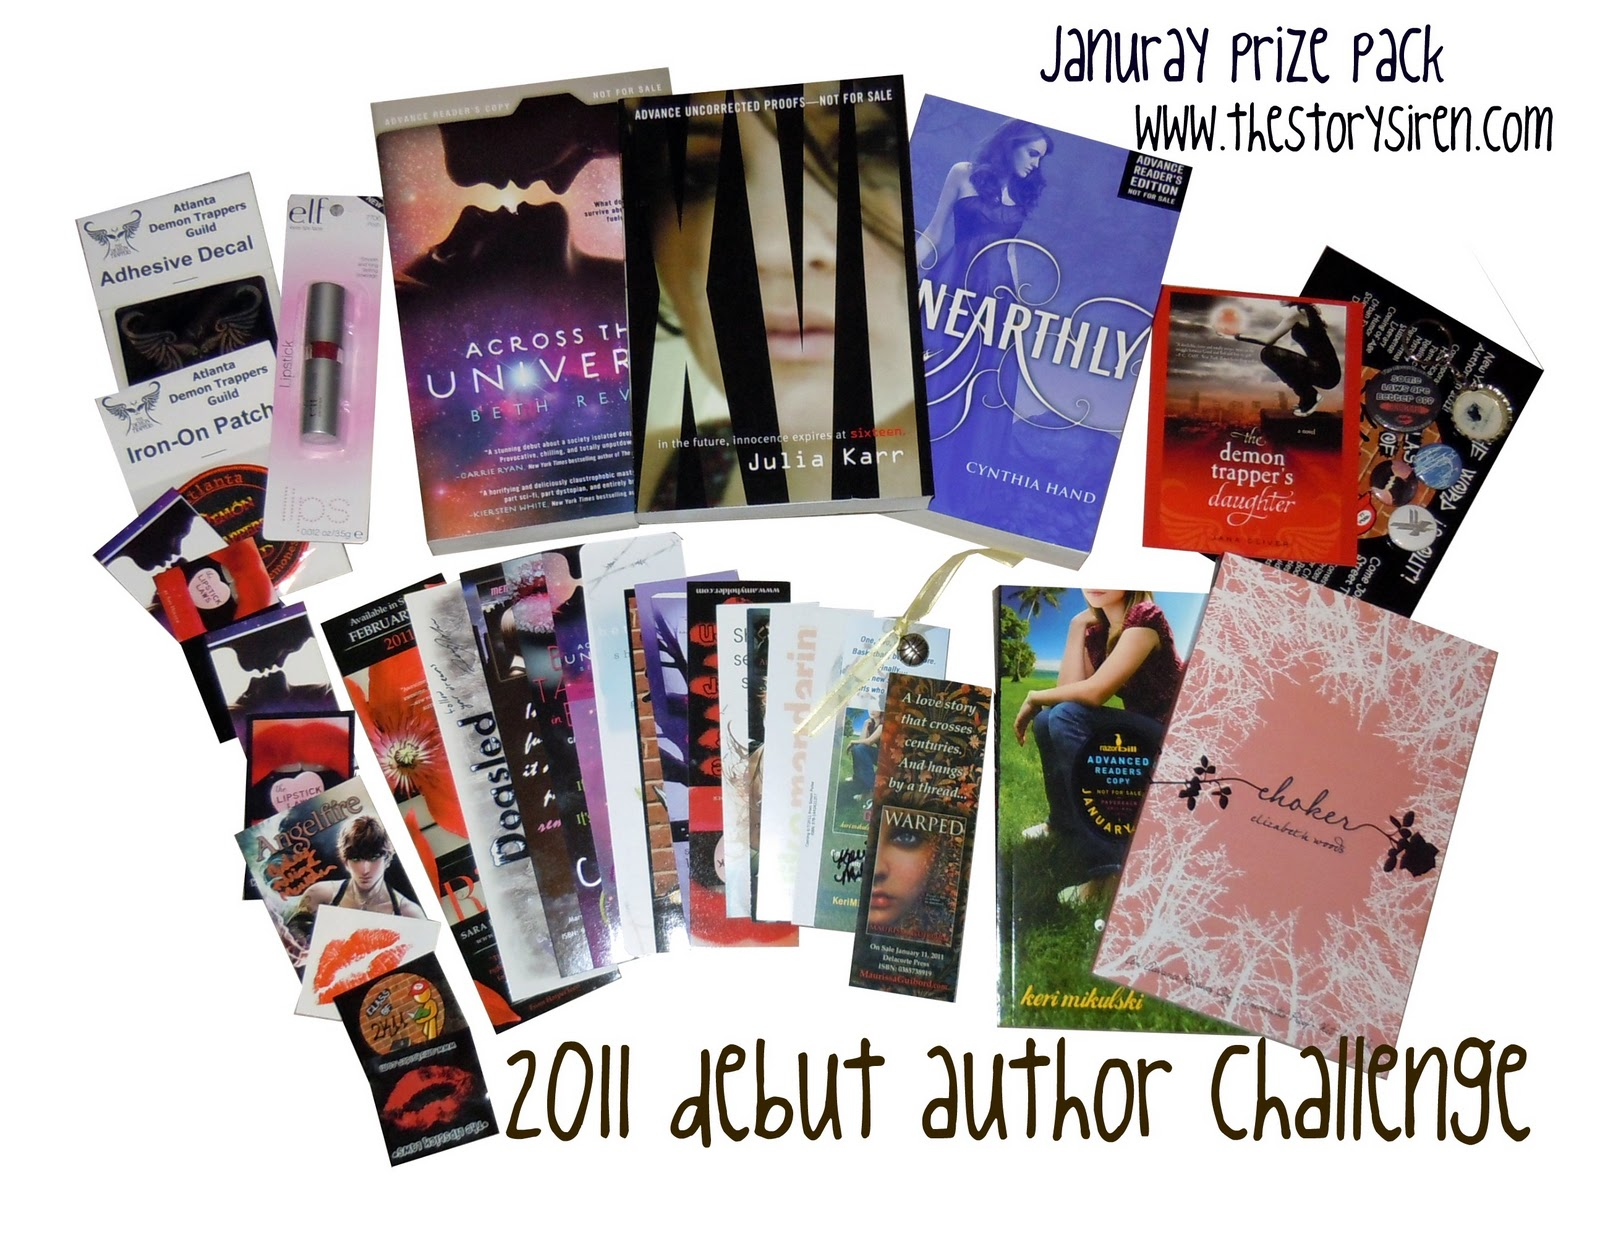 2011 Debute Author Challenge: January